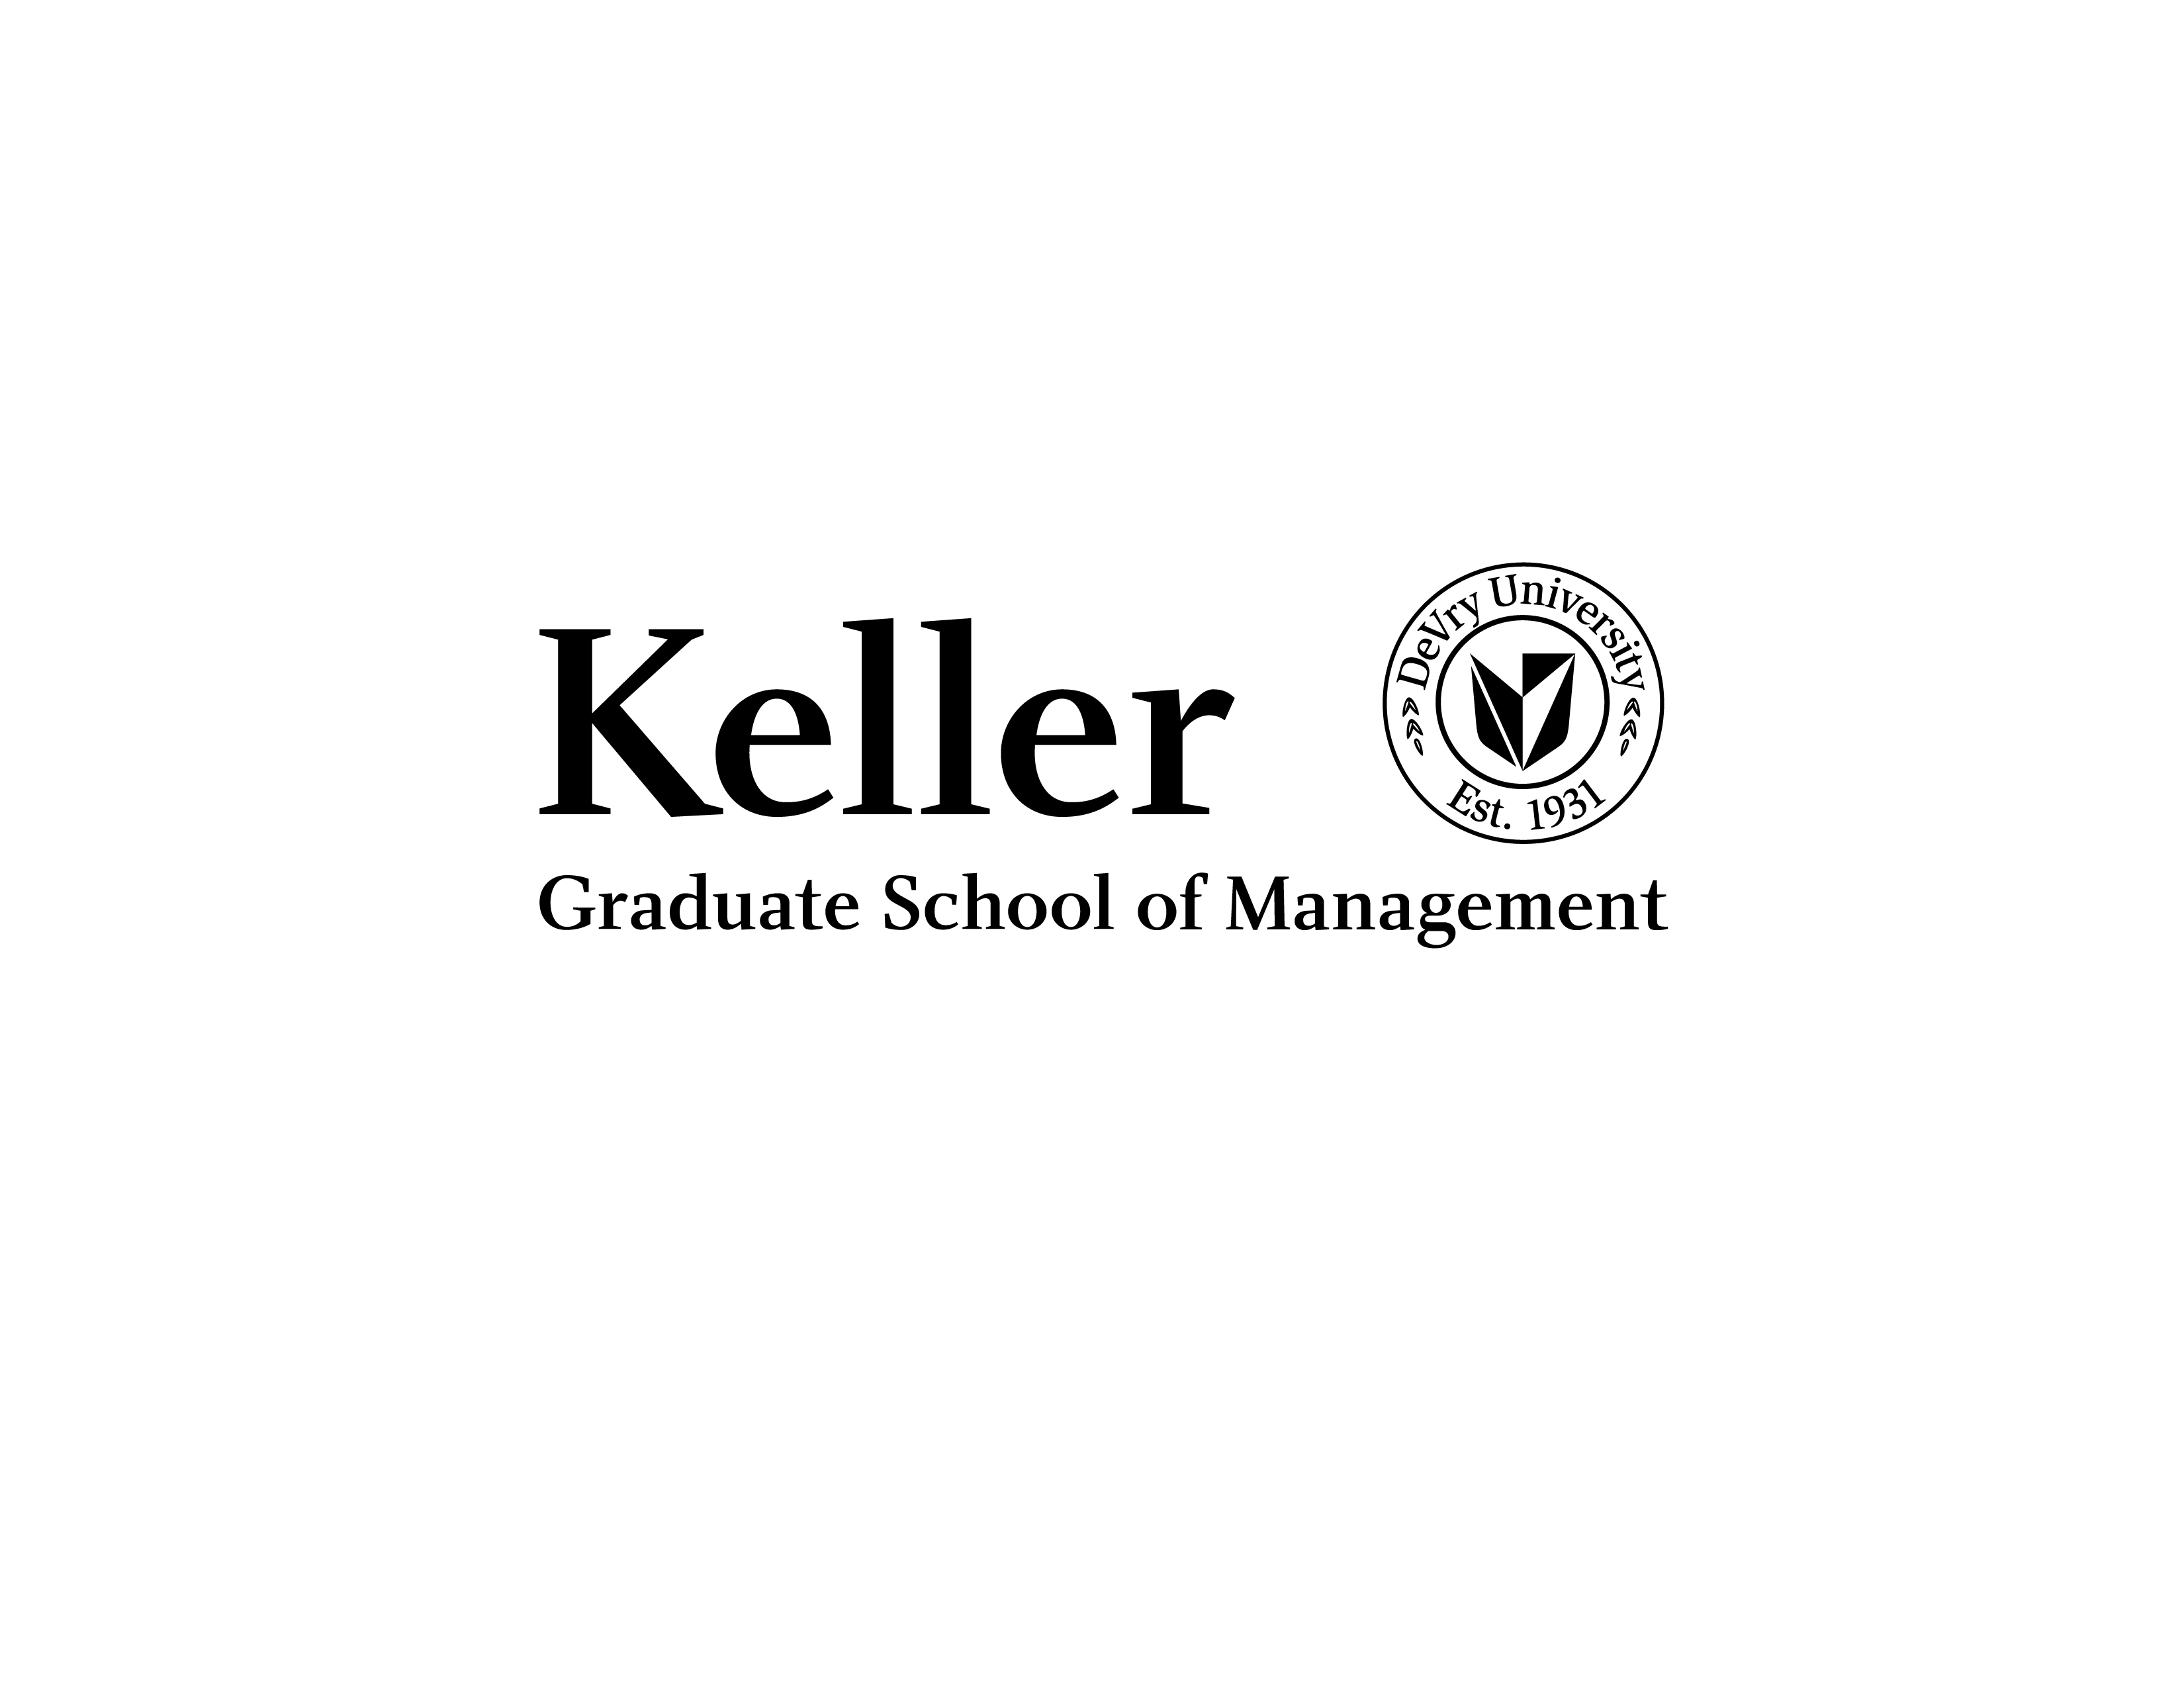 Keller Graduate School Management Advertising Print Logo